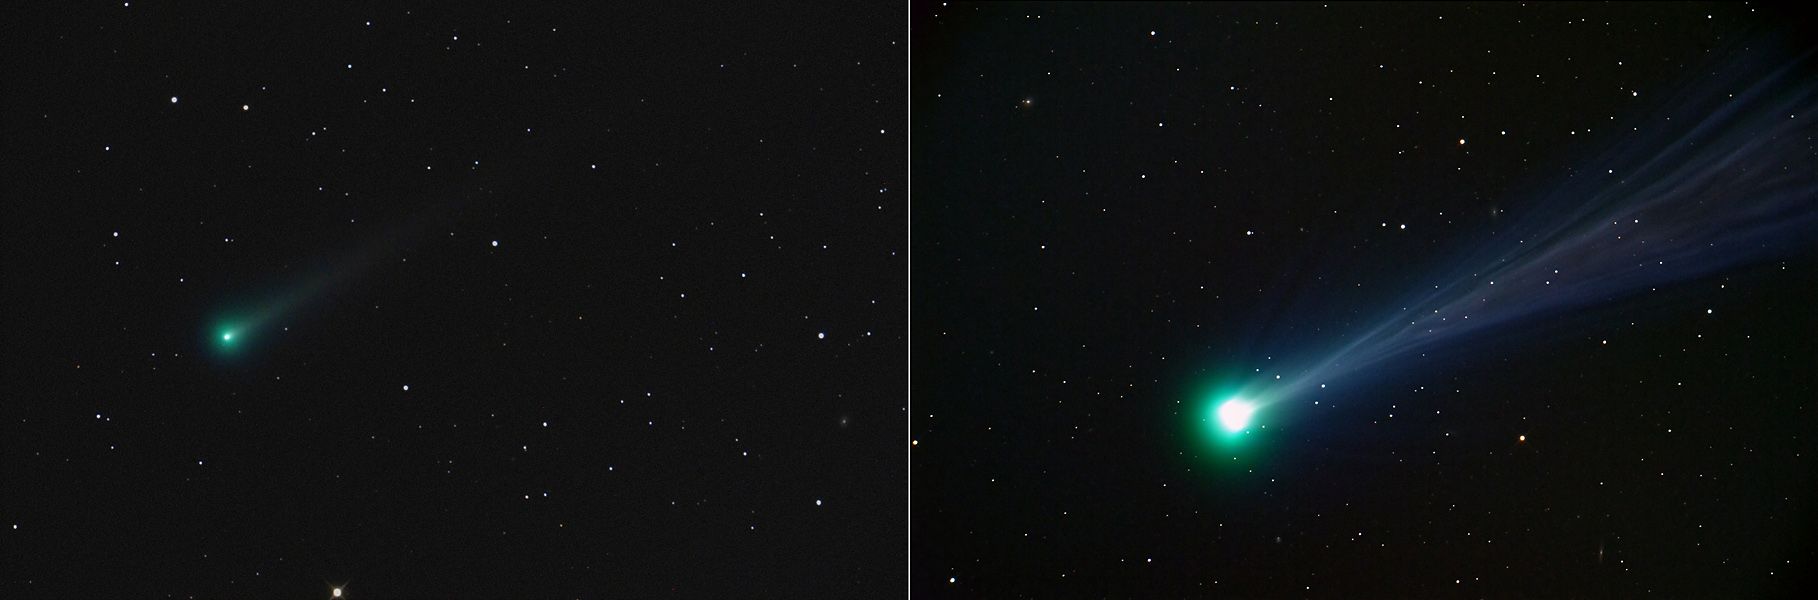 Comet ISON in Outburst